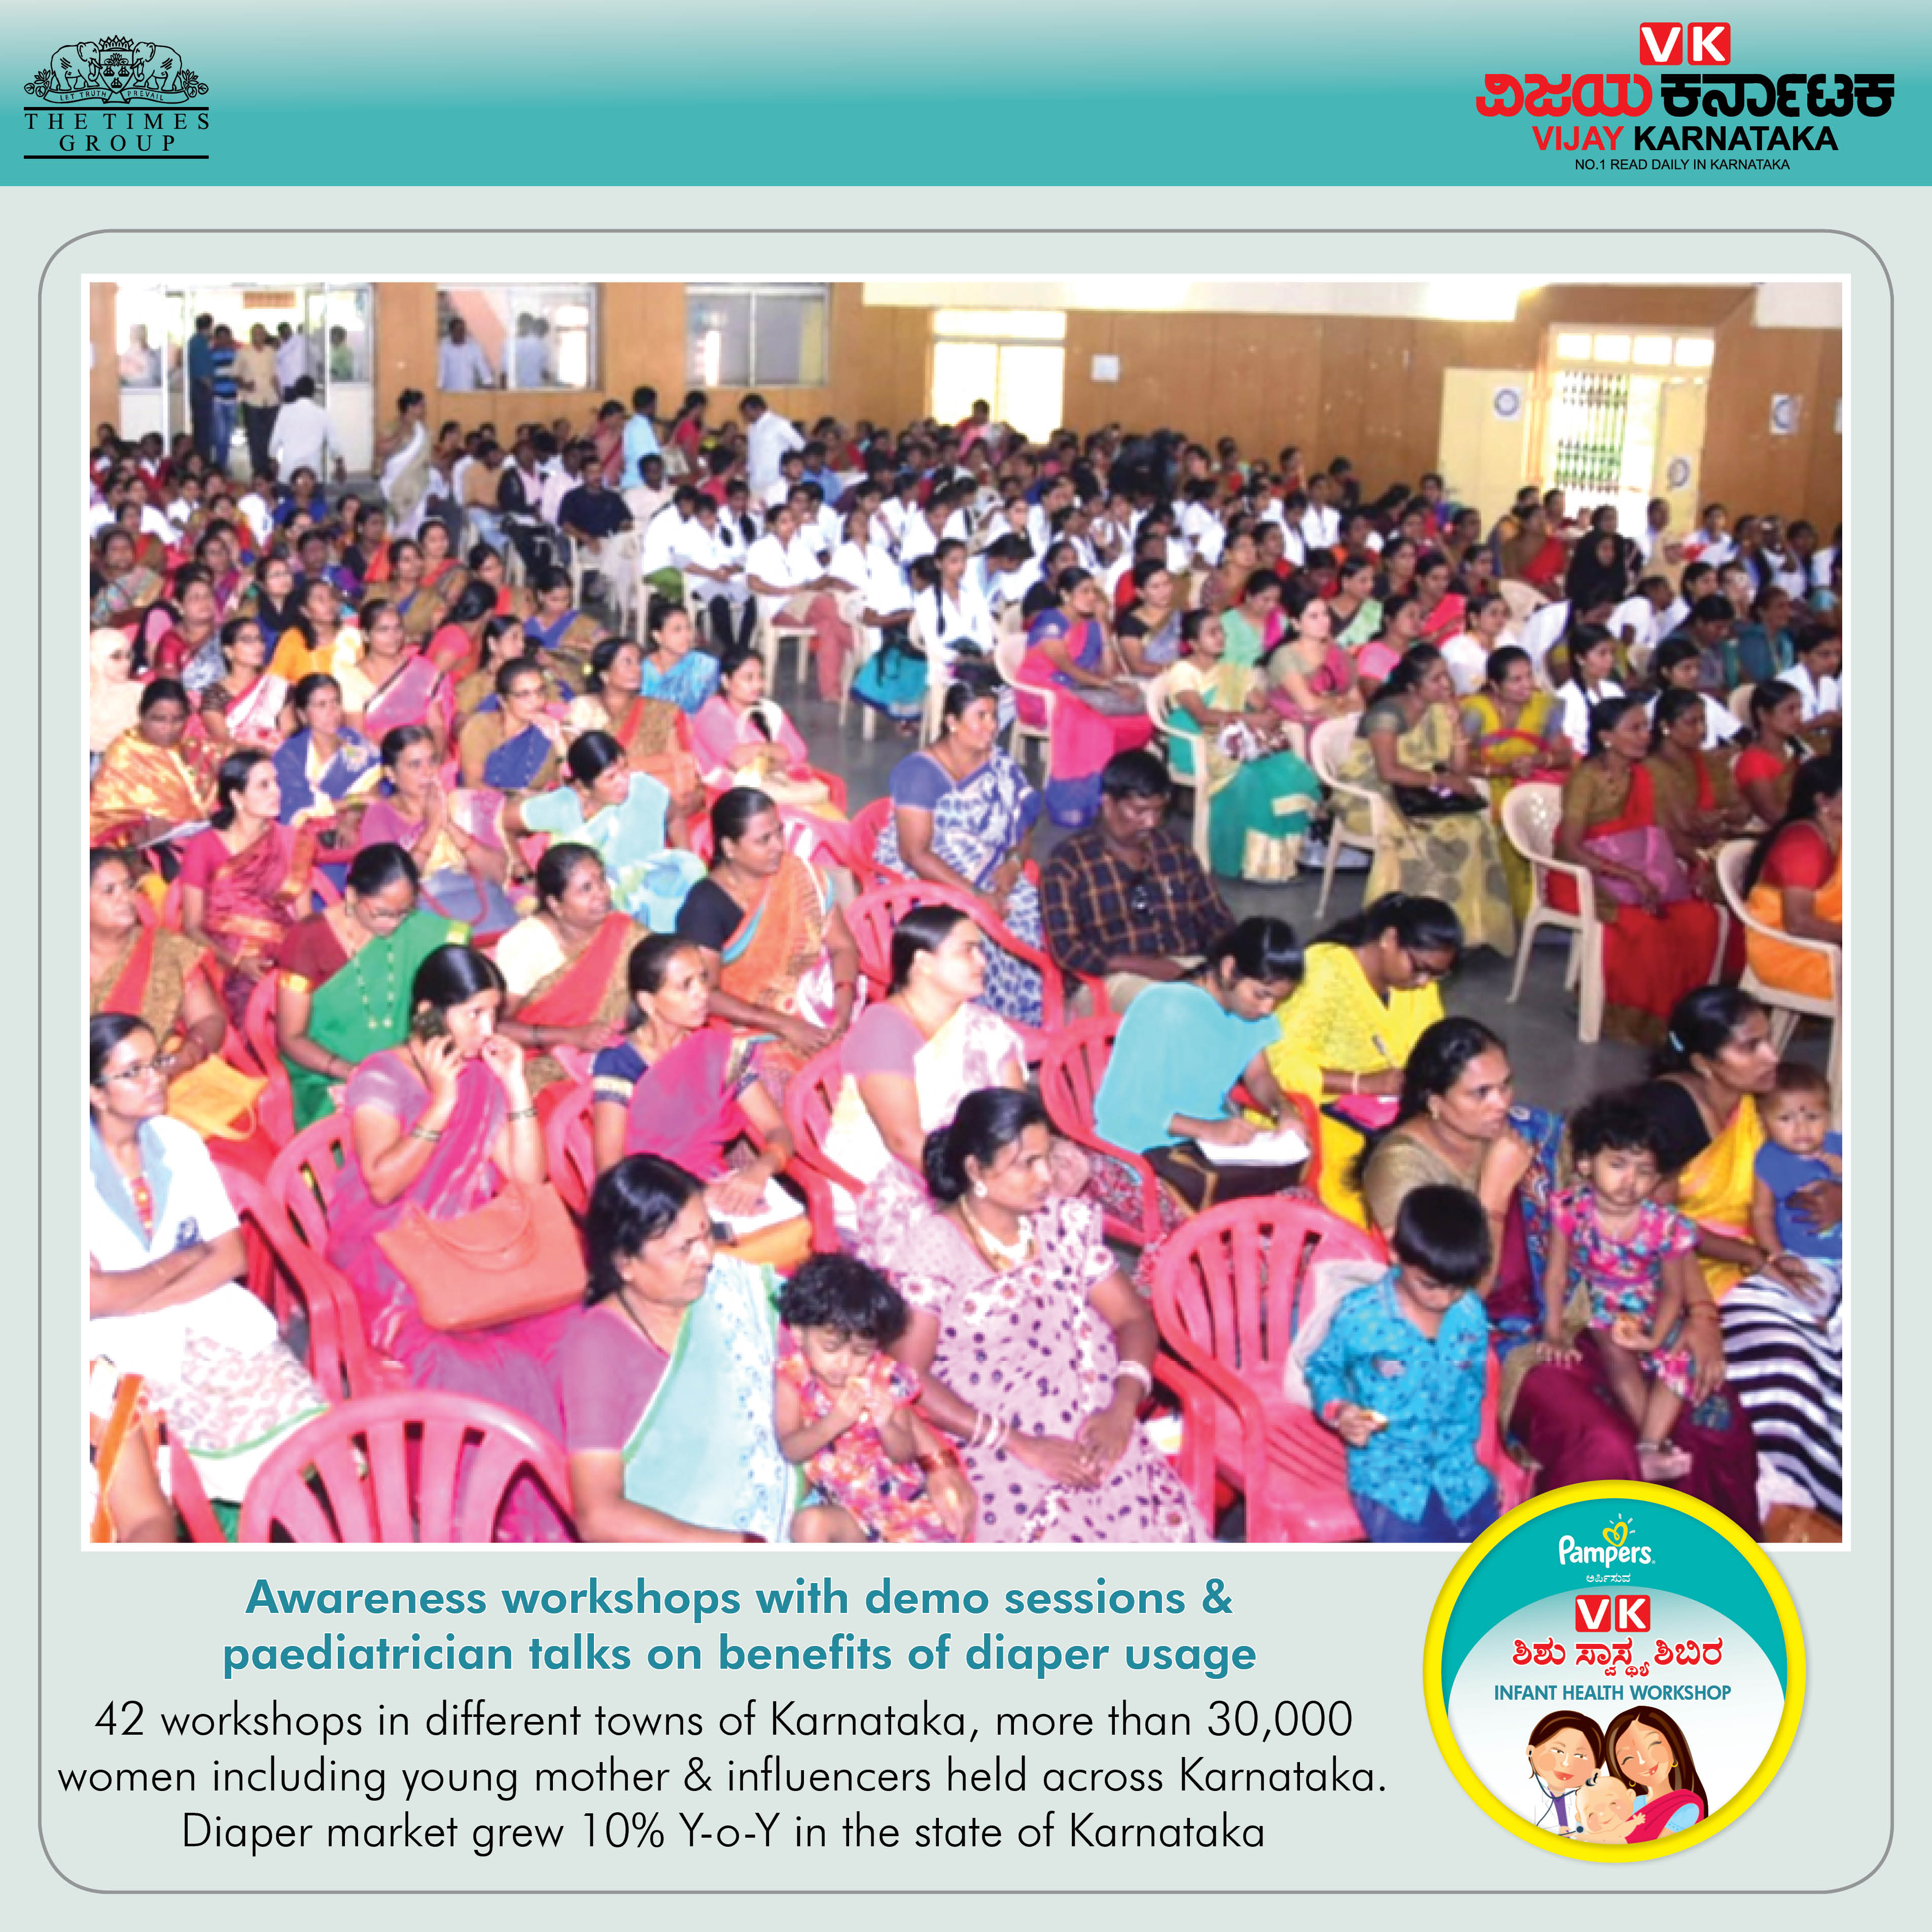 VK Shishu Swasthya Shibira (Infant Health Workshops) powered by Pampers